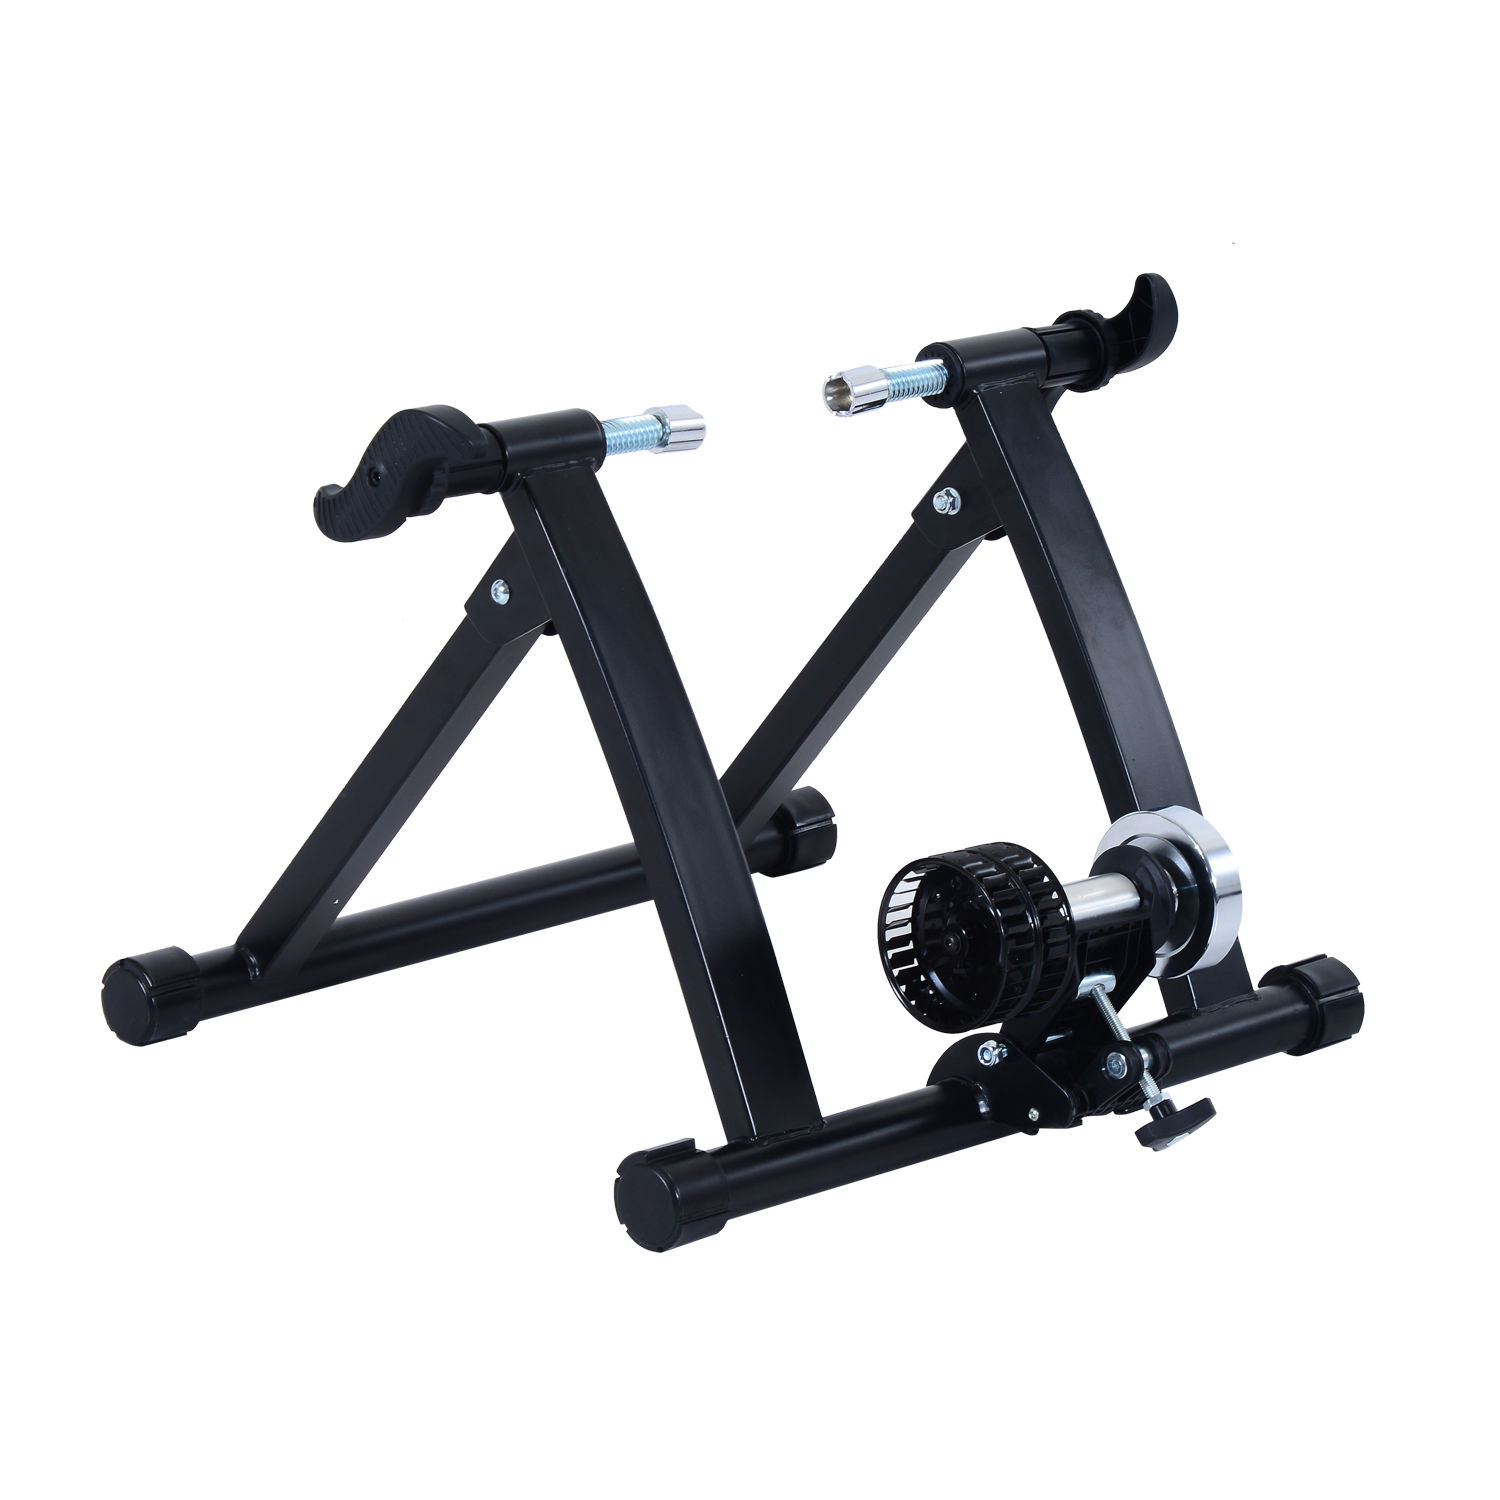 rollentrainer fahrrad luft heimtrainer rolle schwarz 26 28. Black Bedroom Furniture Sets. Home Design Ideas